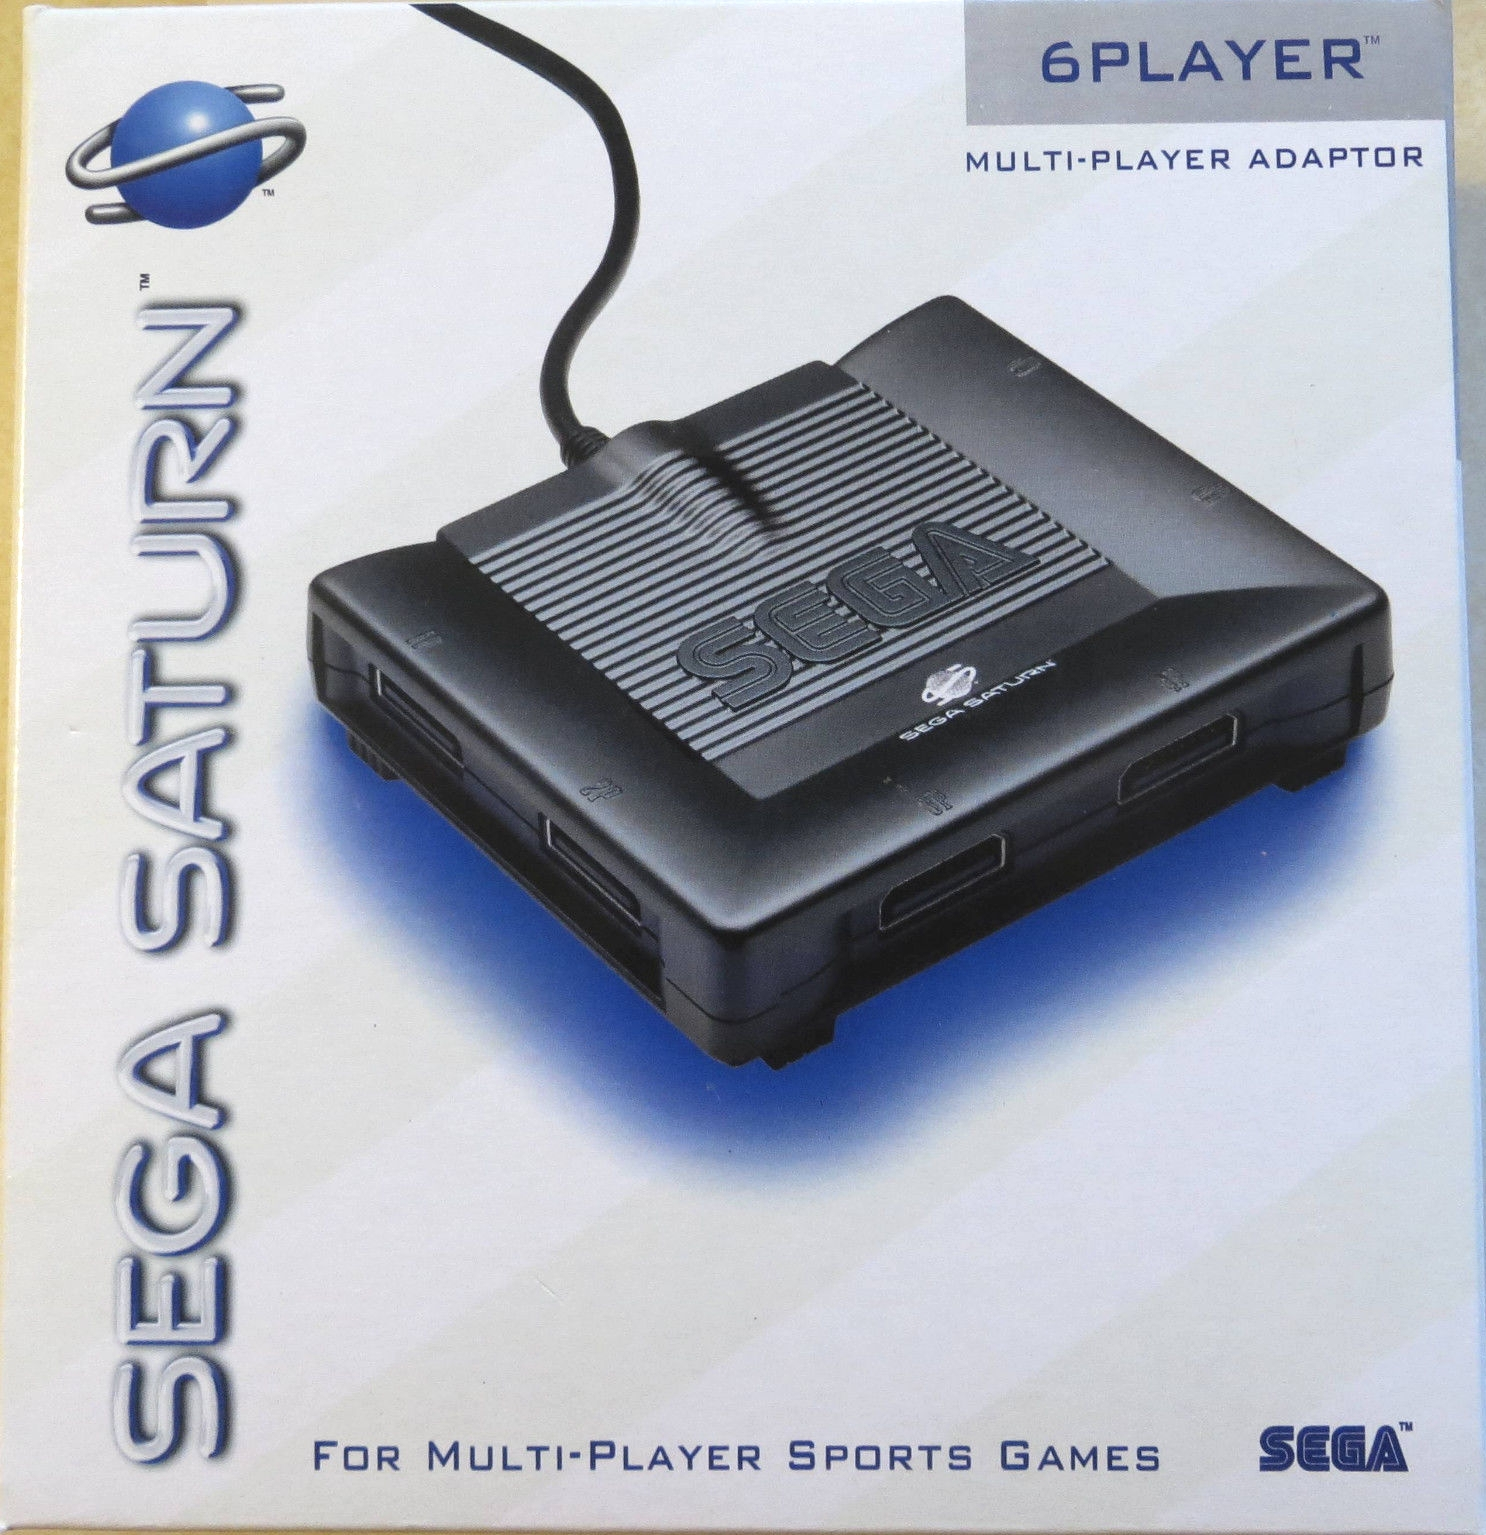 Sega Saturn - Historia[+PESADO][+MUITO PESADO!] Sega_Saturn_6_Player_Multiplayer_Adapter_Box